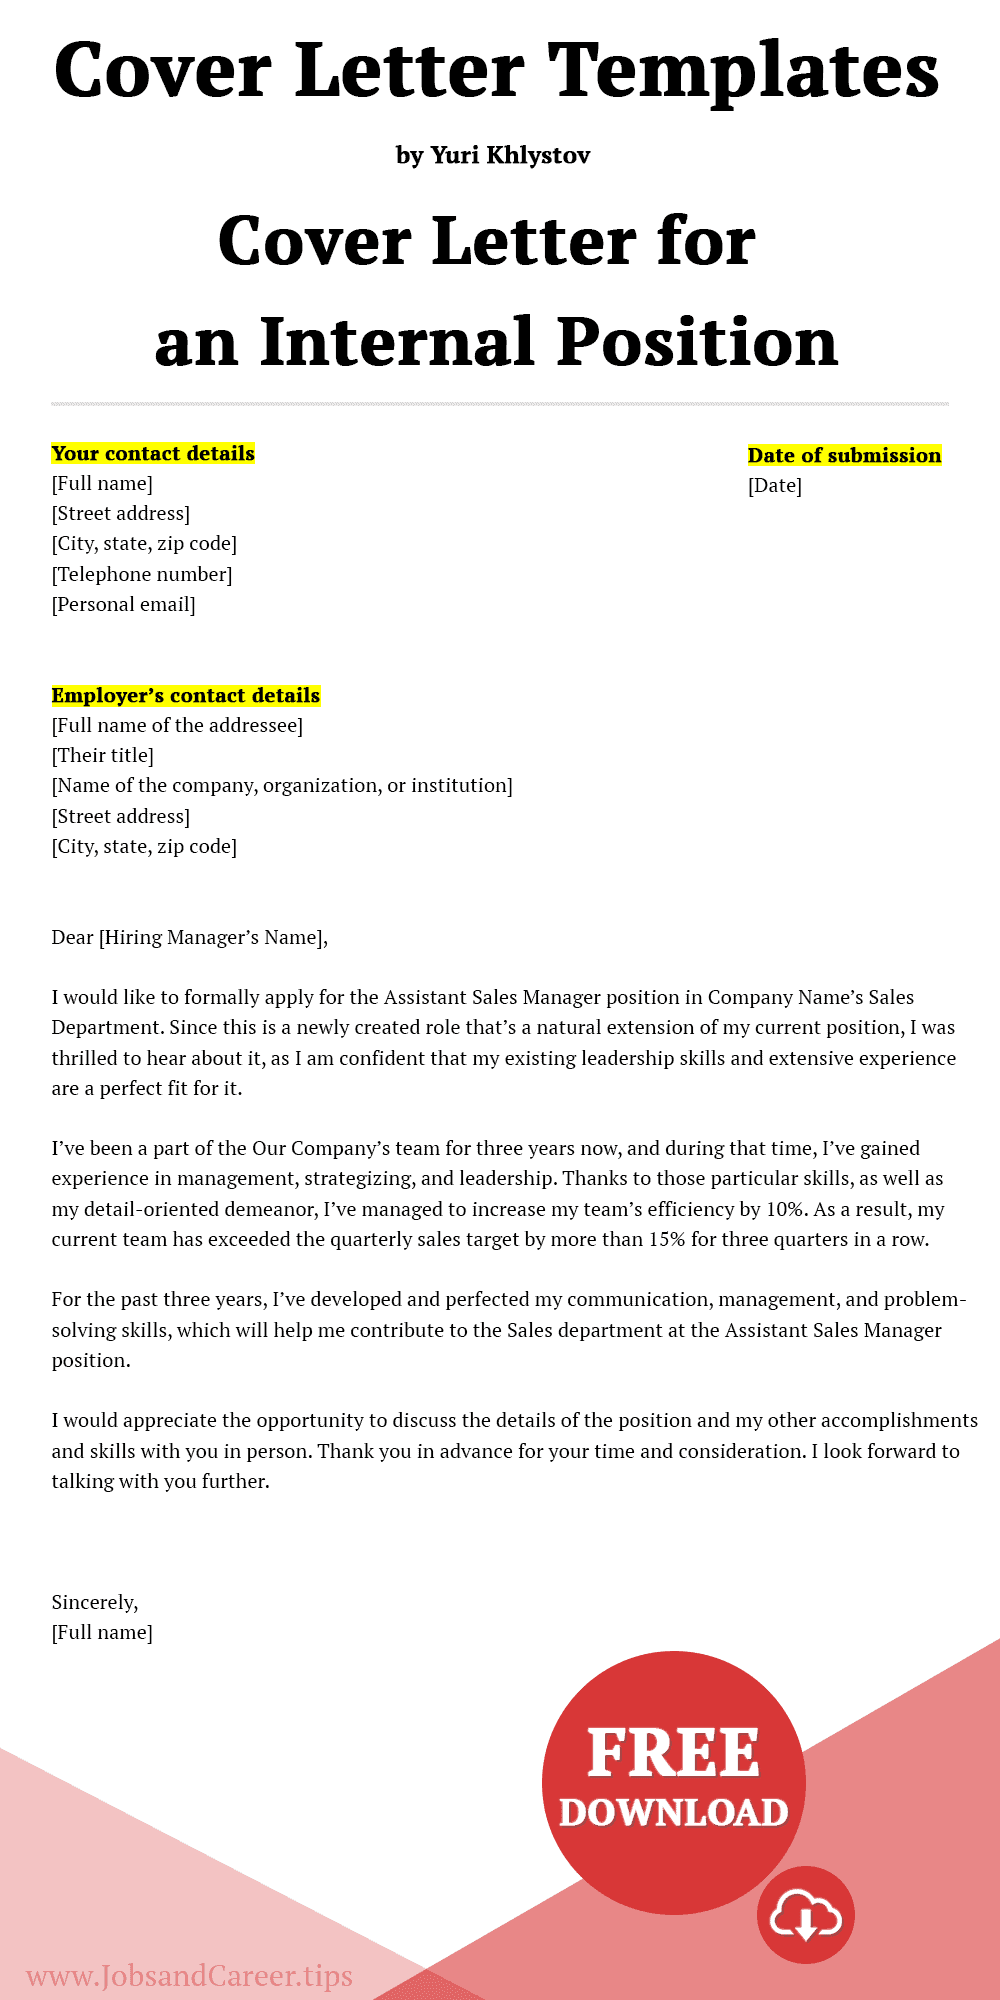 Click to download the cover letter template for an internal position